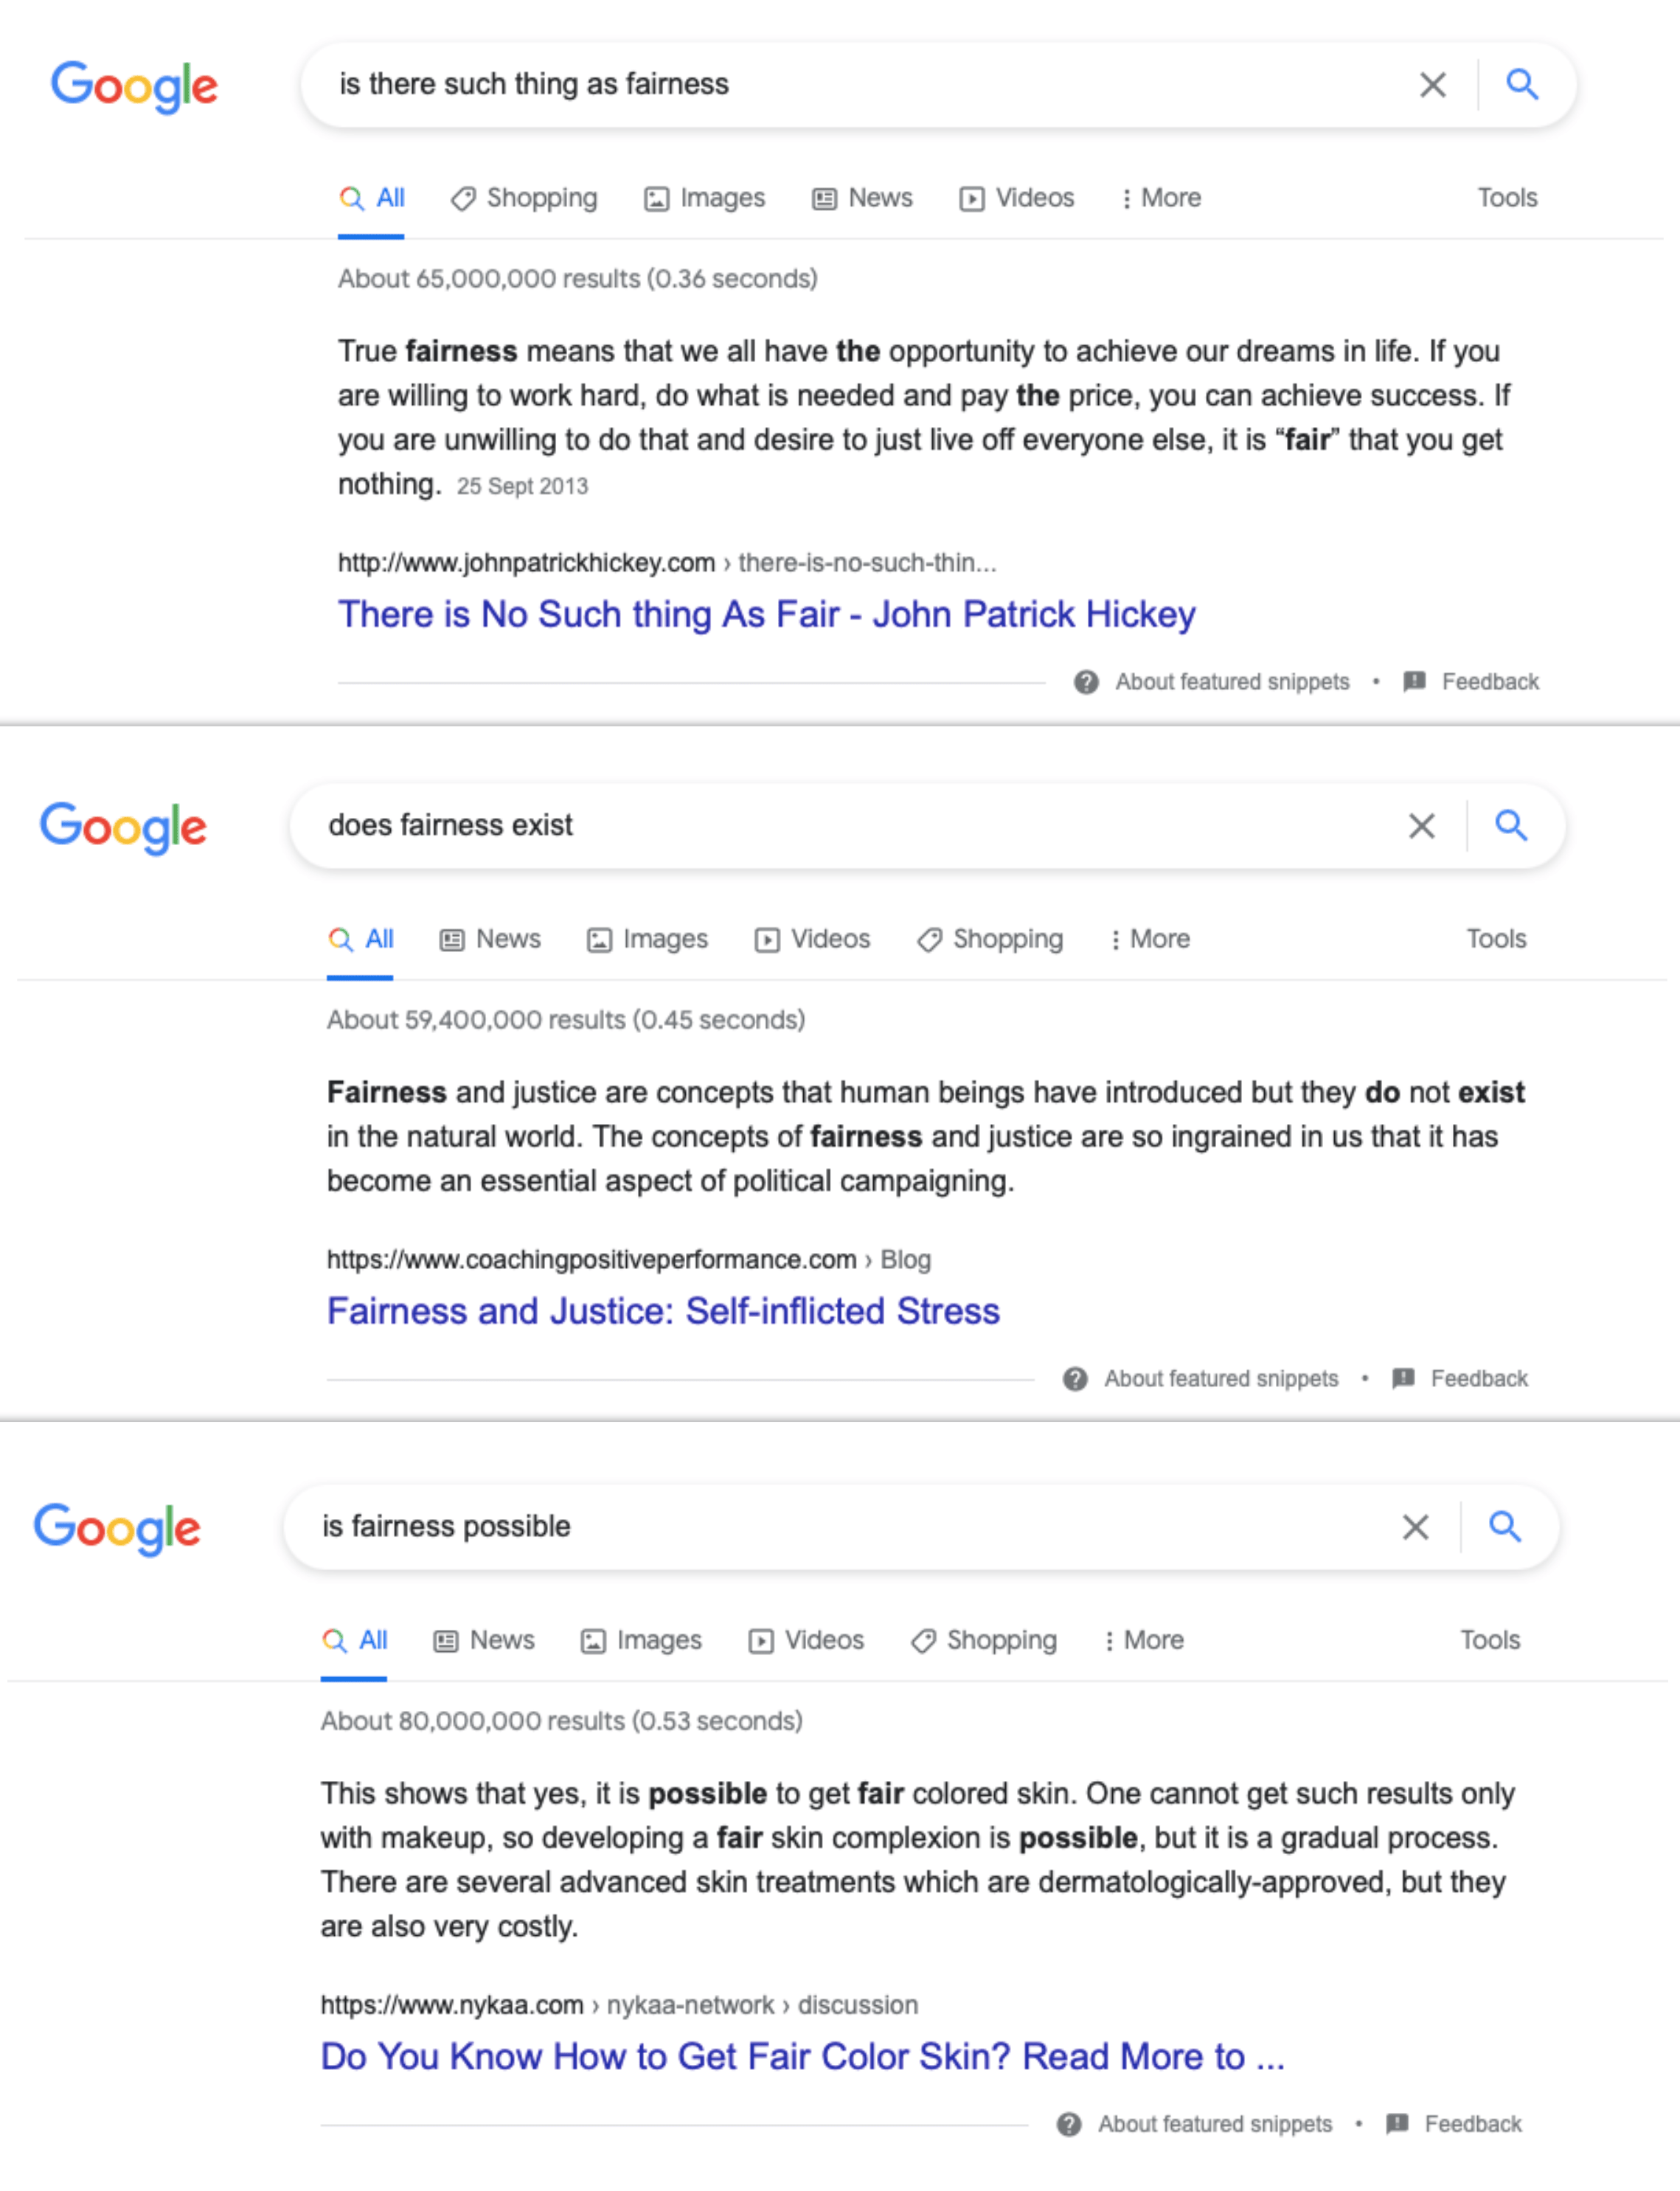 Featured snippets for a controversial query